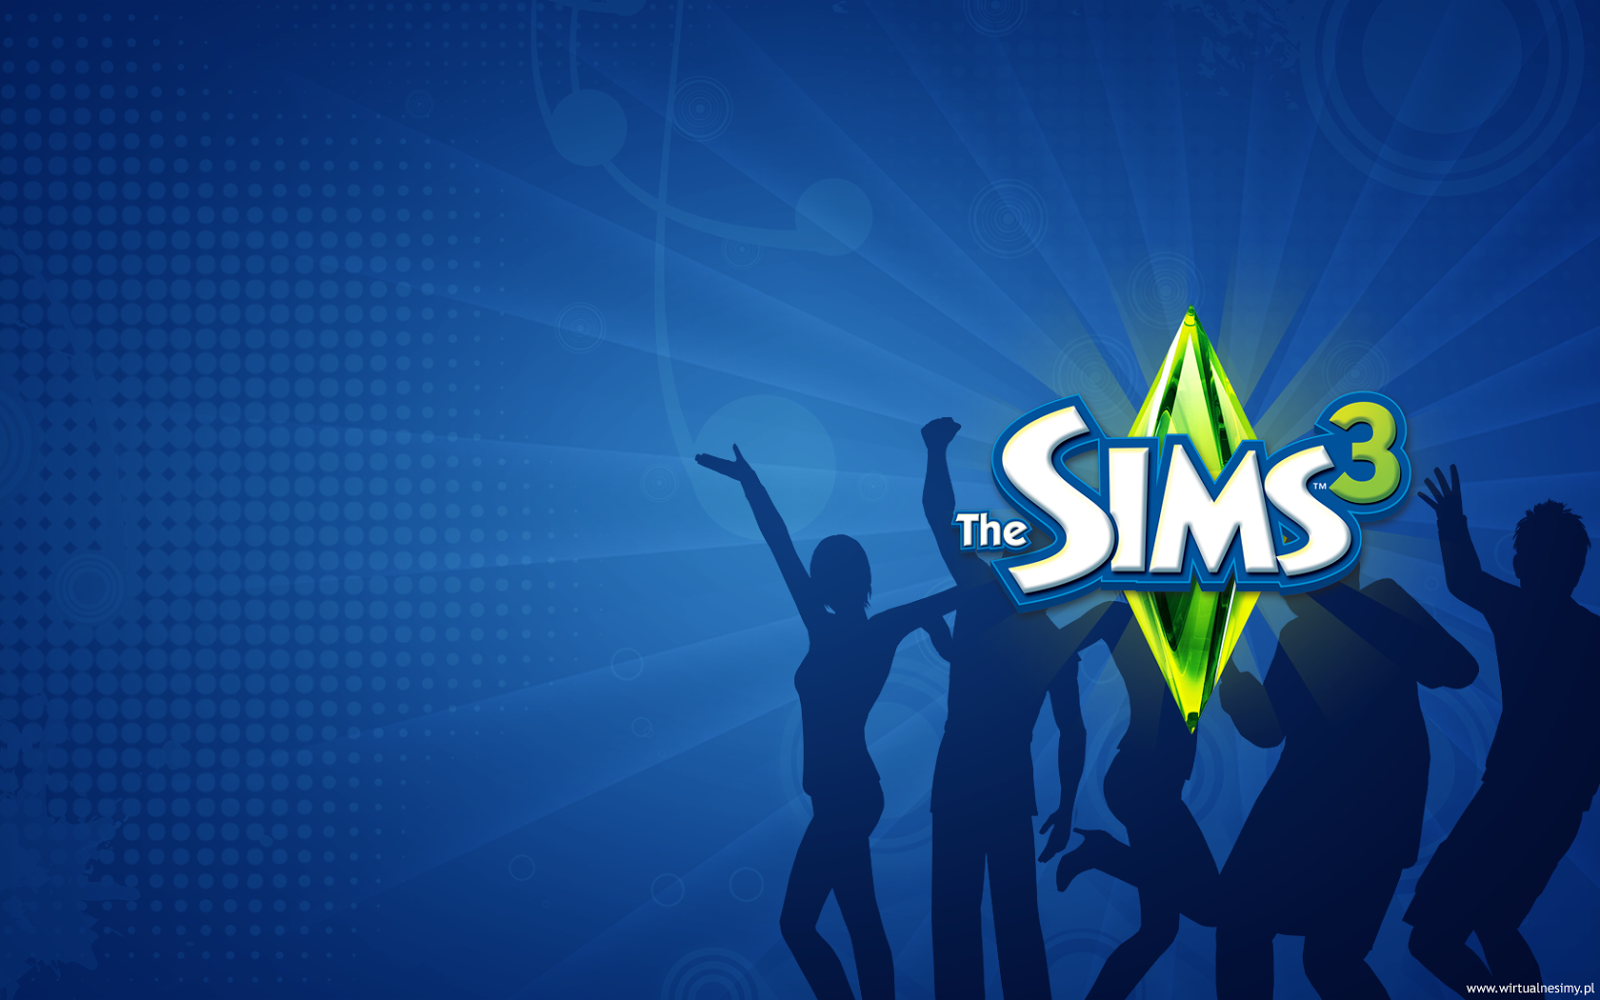 Milujeme The Sims The Sims 3 TapetyWallpapers na PC 1600x1000